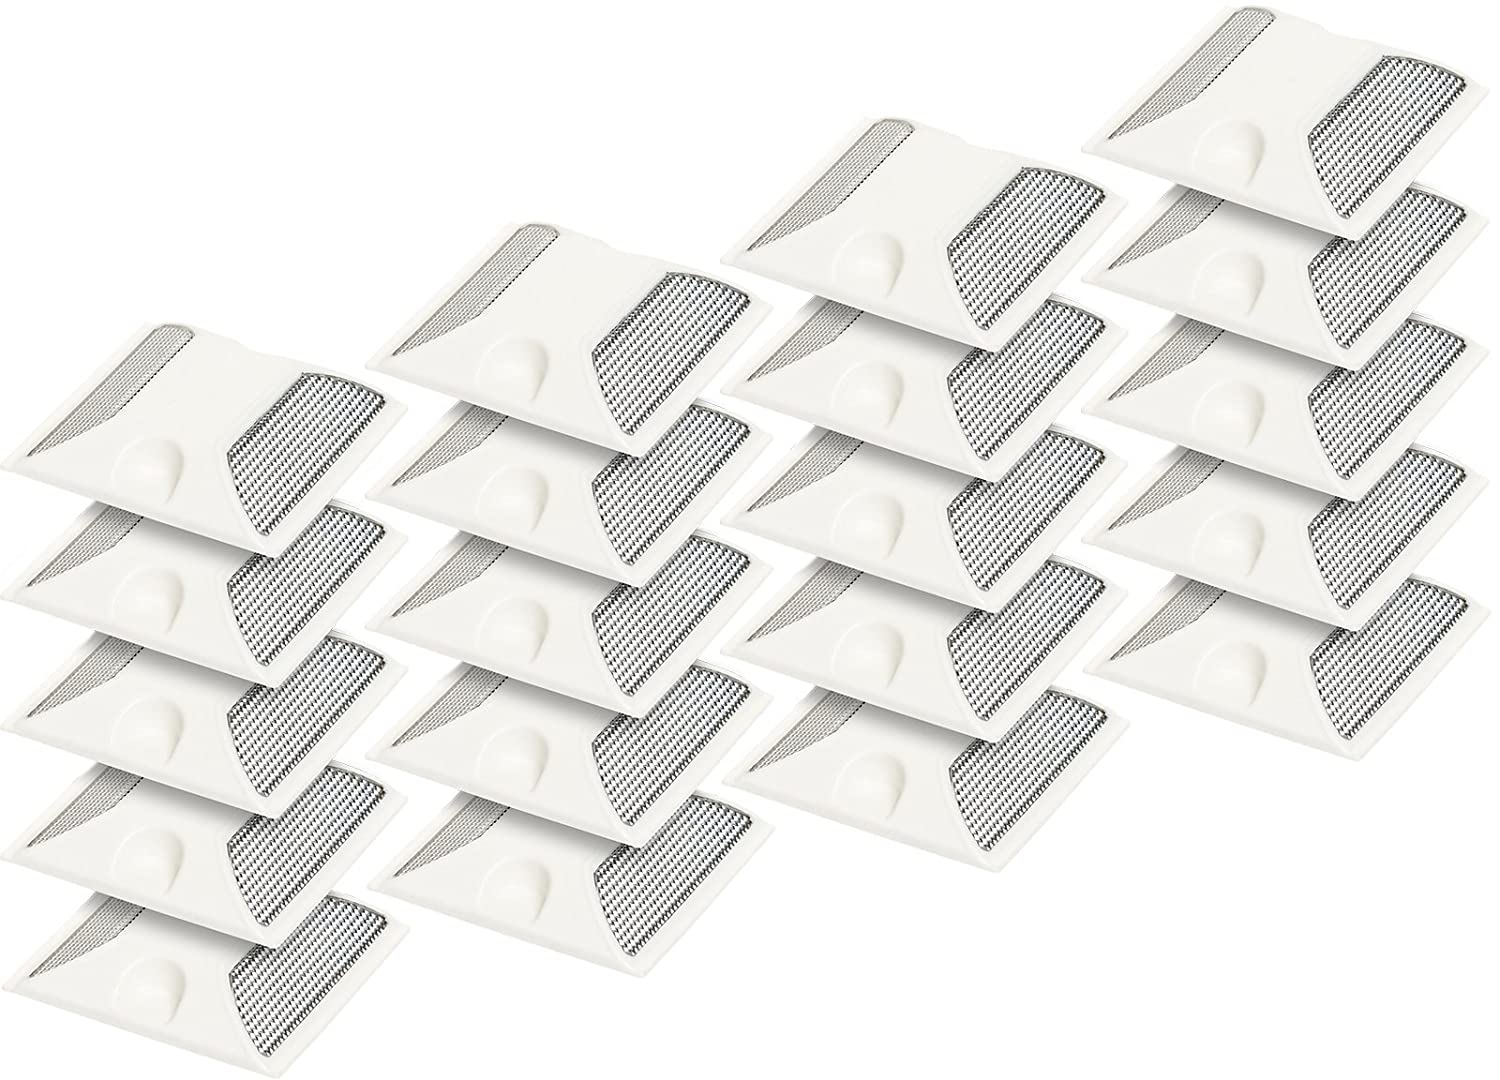 20-Pack Commercial Reflective Road Pavement Markers